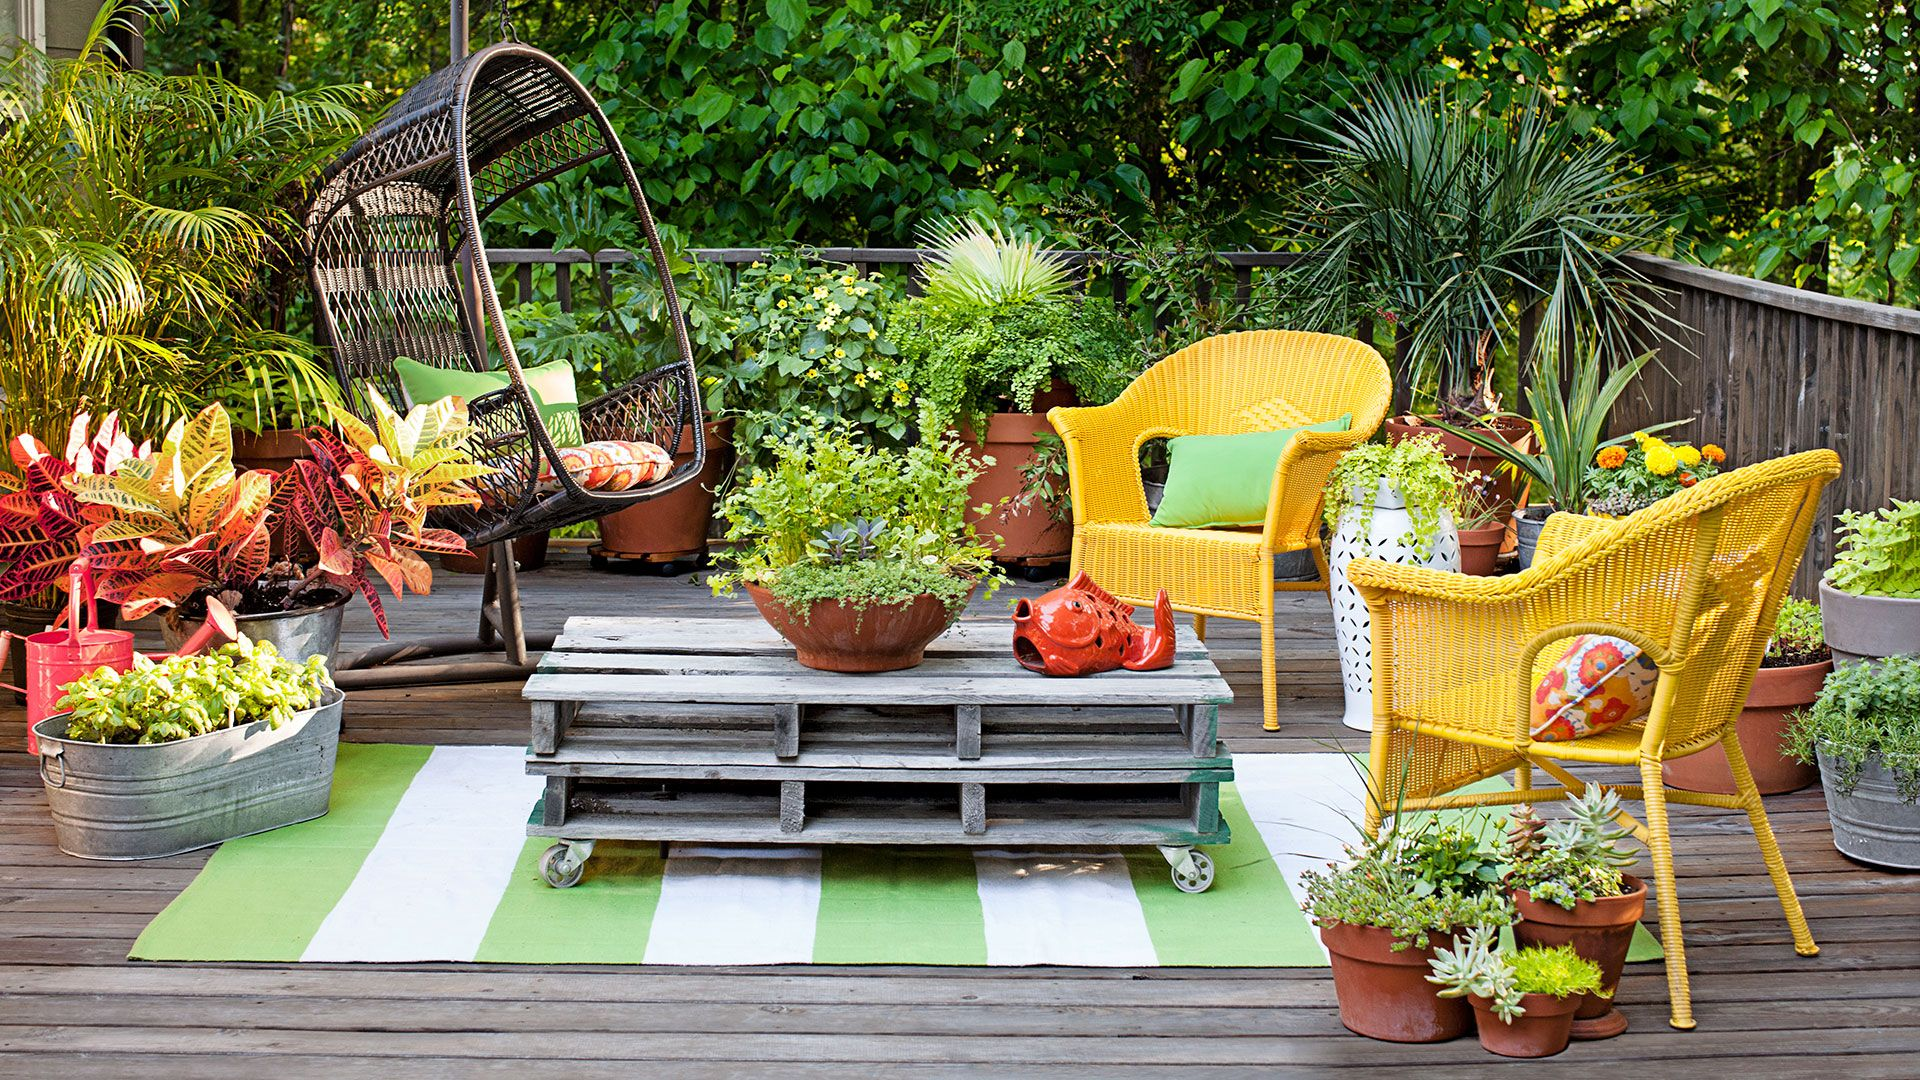 Cozy HangoutClark's biggest splurge, this all-weather swing chair, is crafted of sturdy faux rattan—and is the perfect size for gently swaying a parent and one snuggling kid. All Season(ings)No ornamental plants here: Clark's hardworking herbs—like this cilantro for her fave black-bean-and-corn salsa—get harvested 24/7.